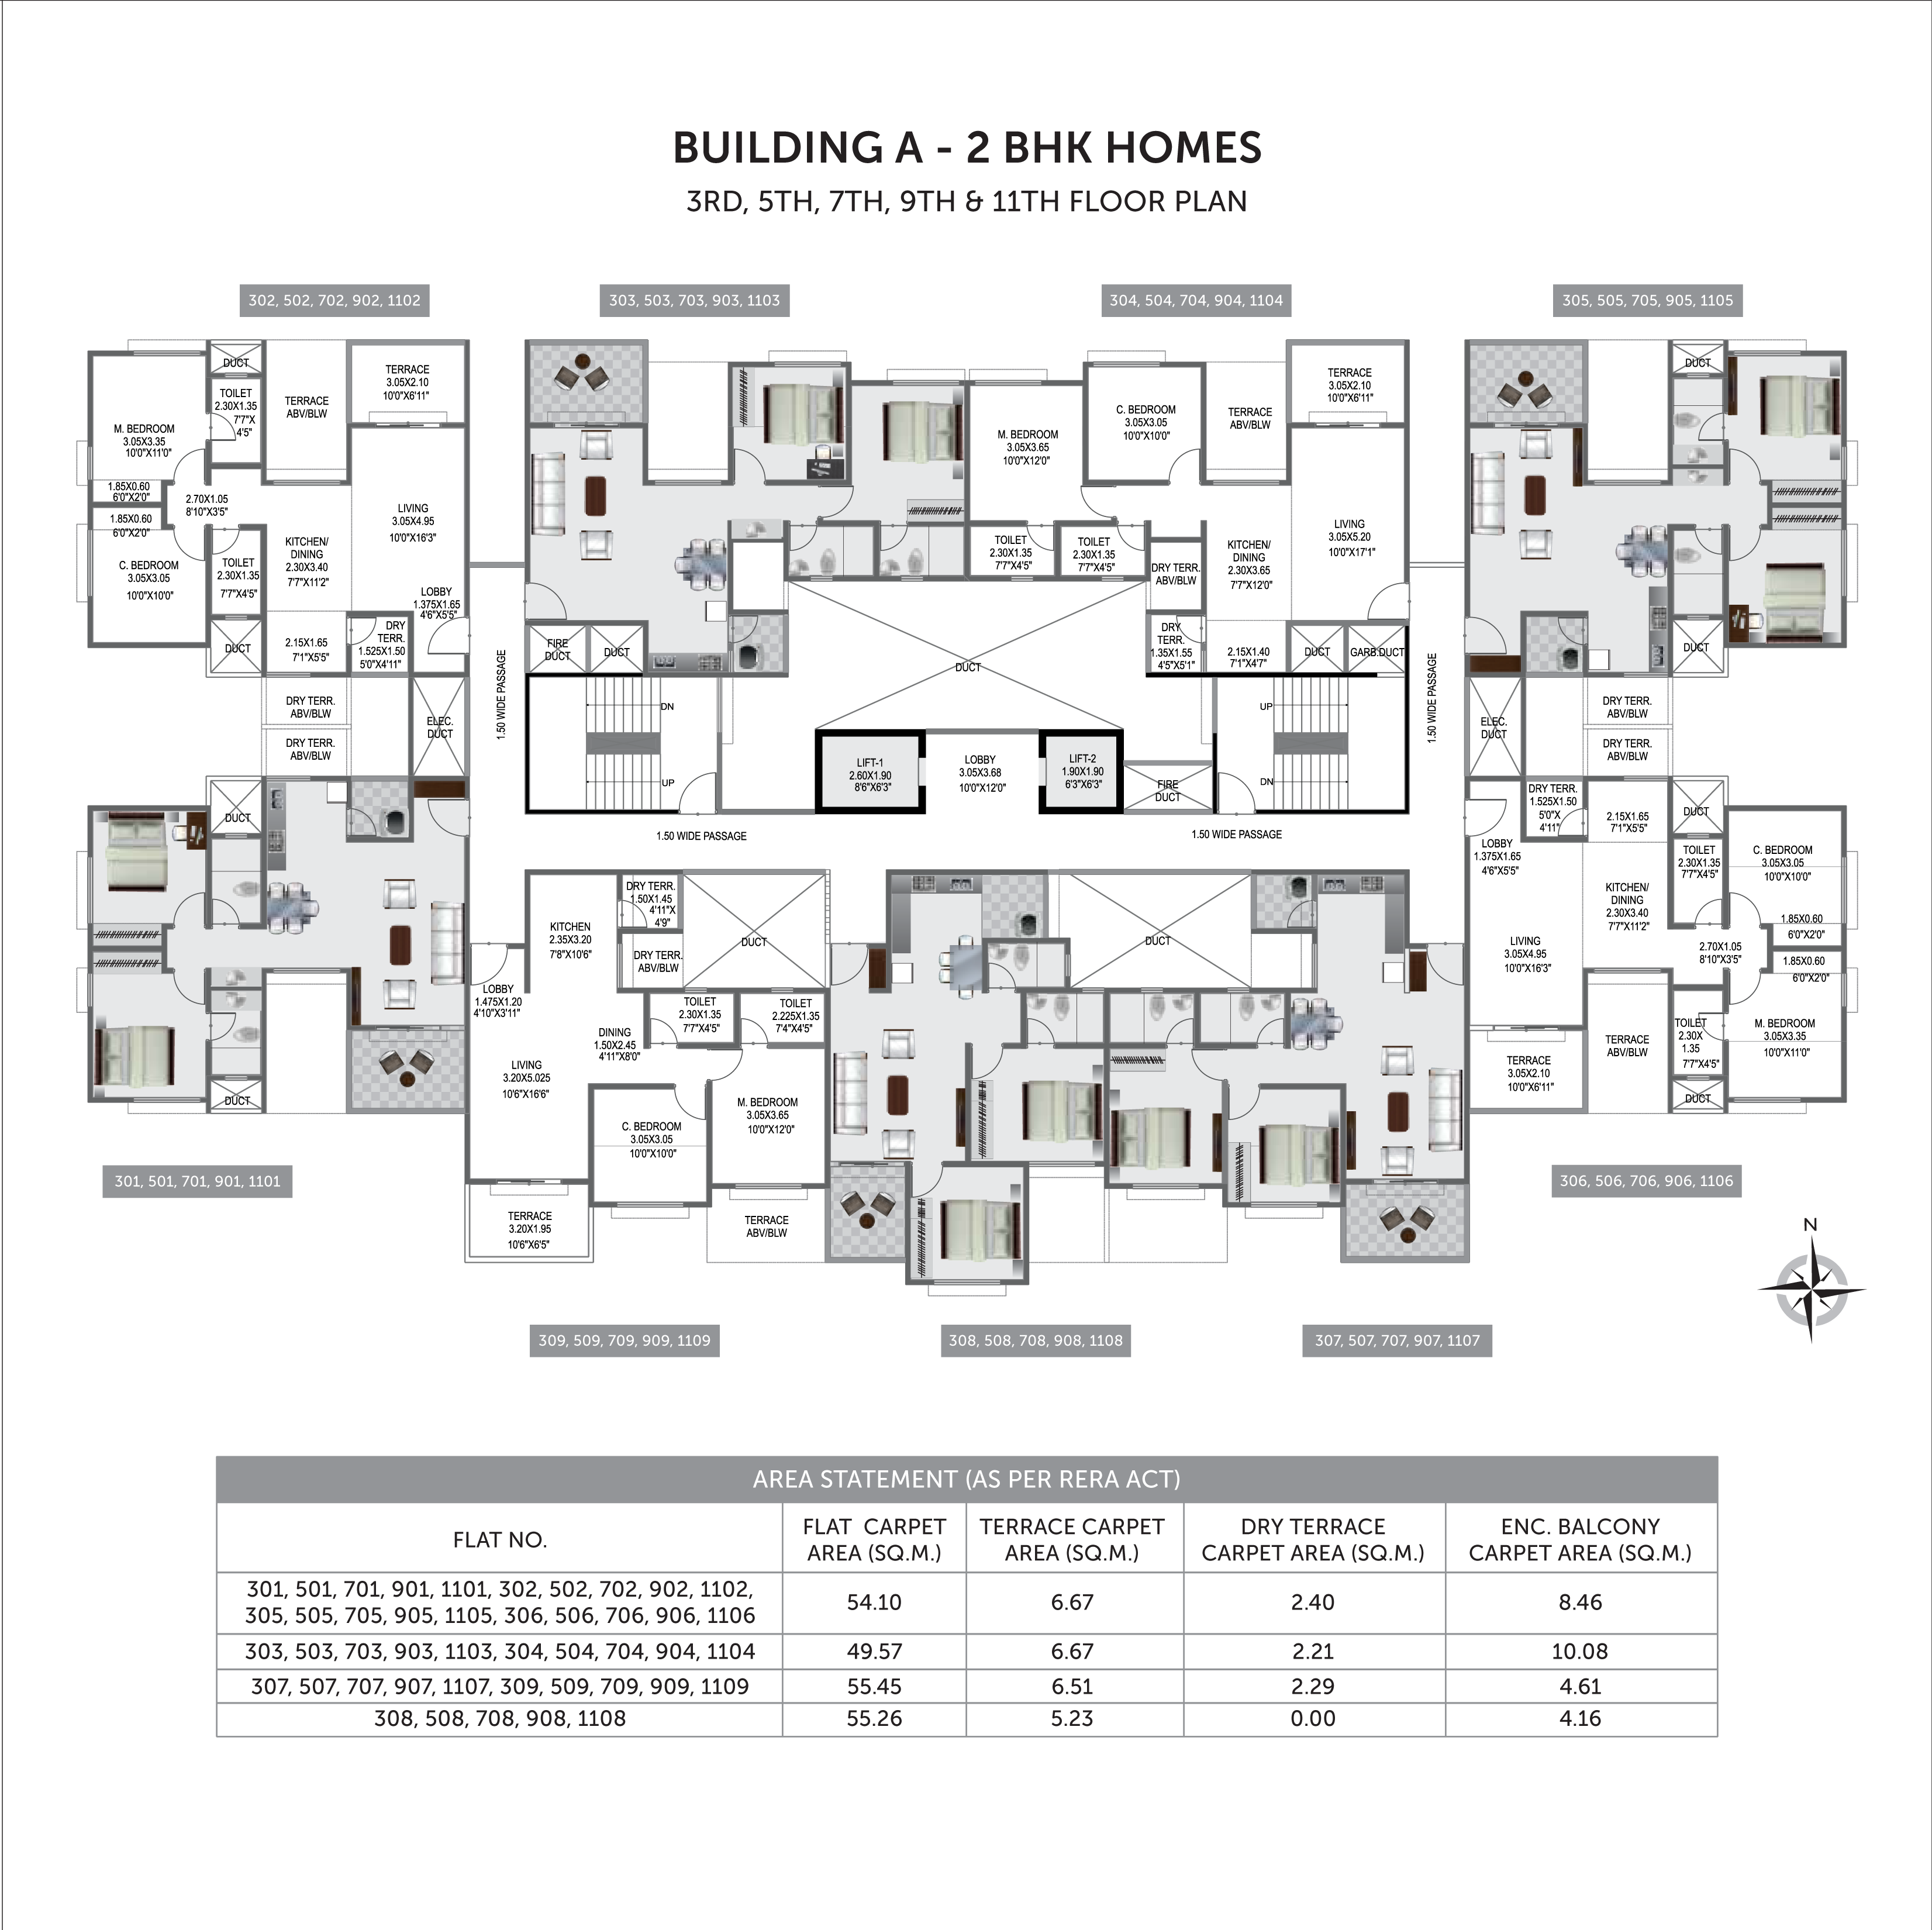 Pristine Prolife 3_Building A  - 3RD, 5TH, 7TH, 9TH & 11TH FLOOR PLAN